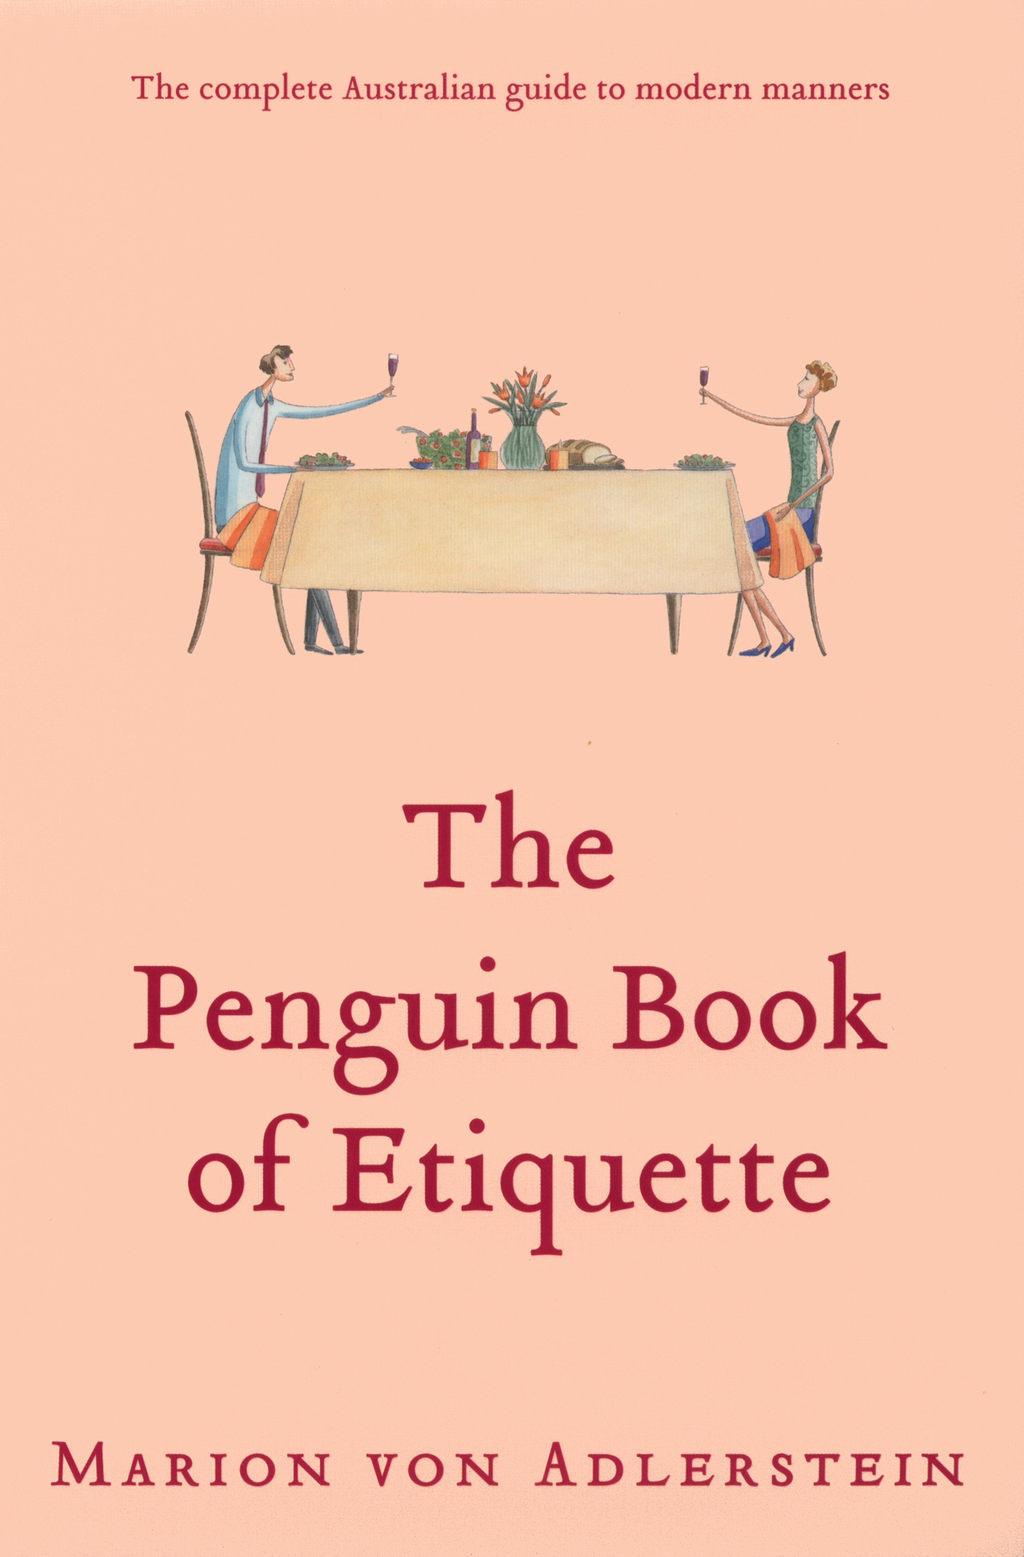 The Penguin Book of Etiquette